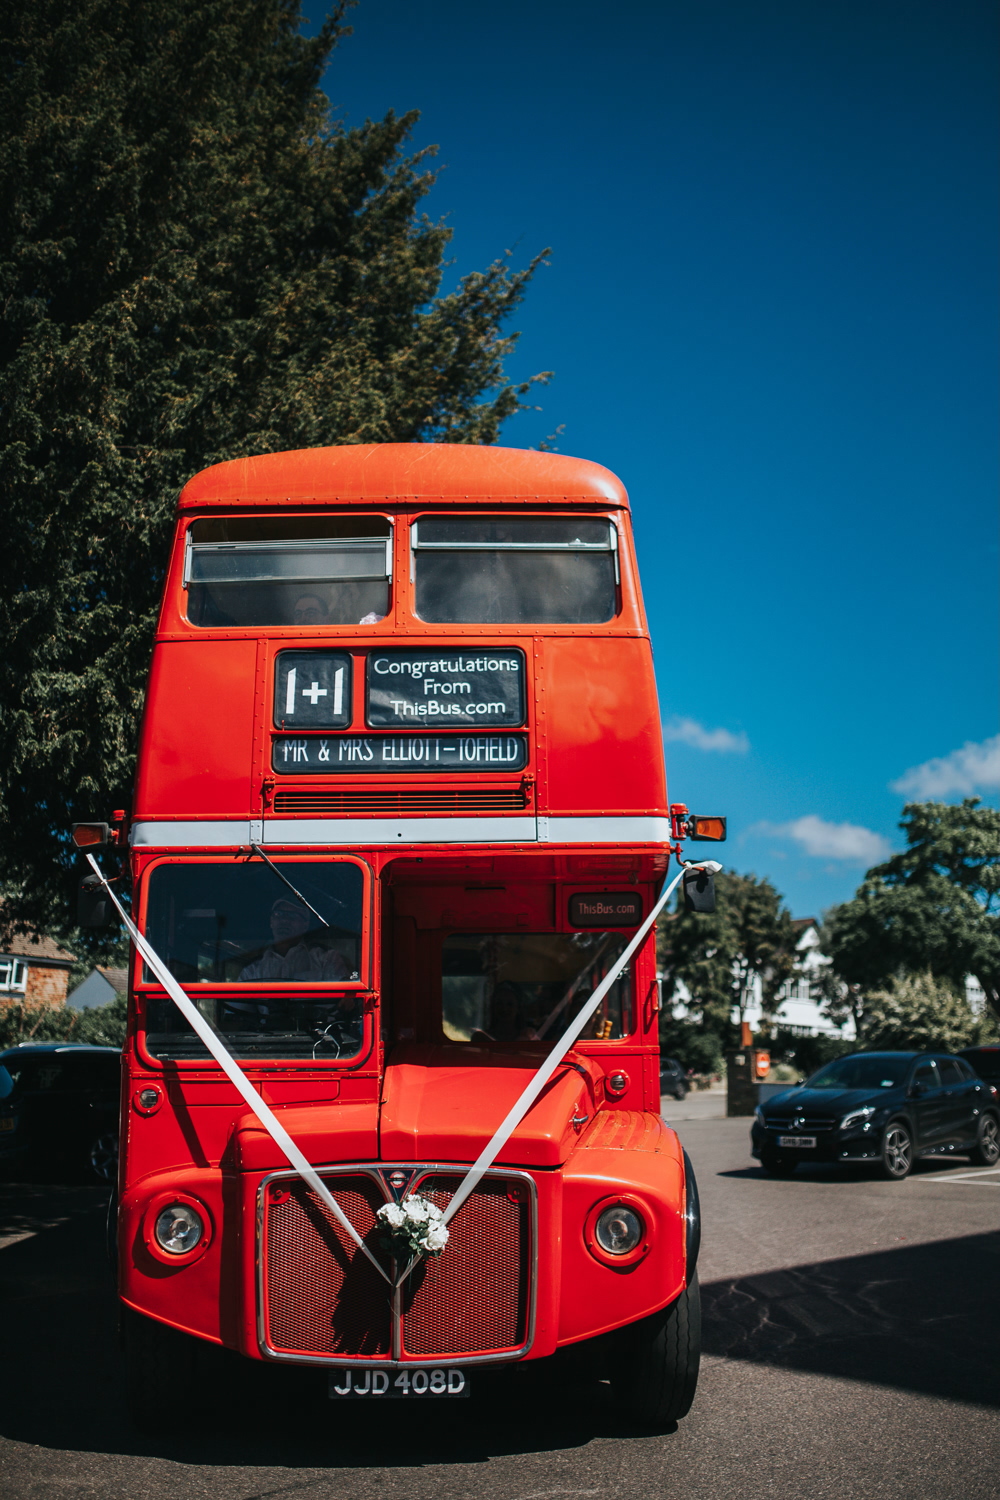 Jennifer & James' Bromley Wedding Photography with a London Bus! 20